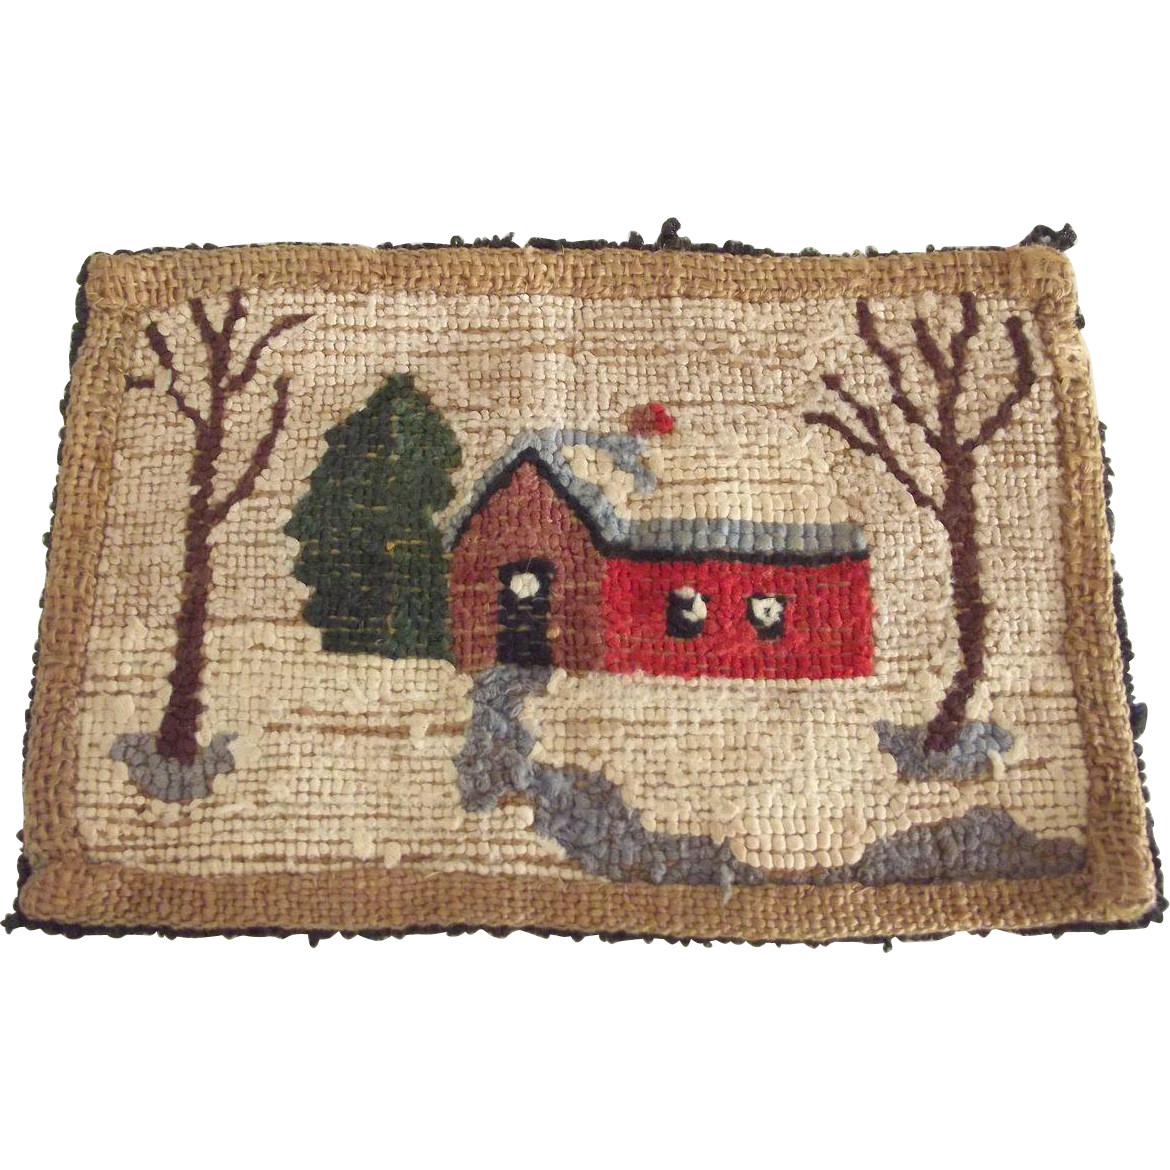 Doll House Hooked Rug With Winter Scene